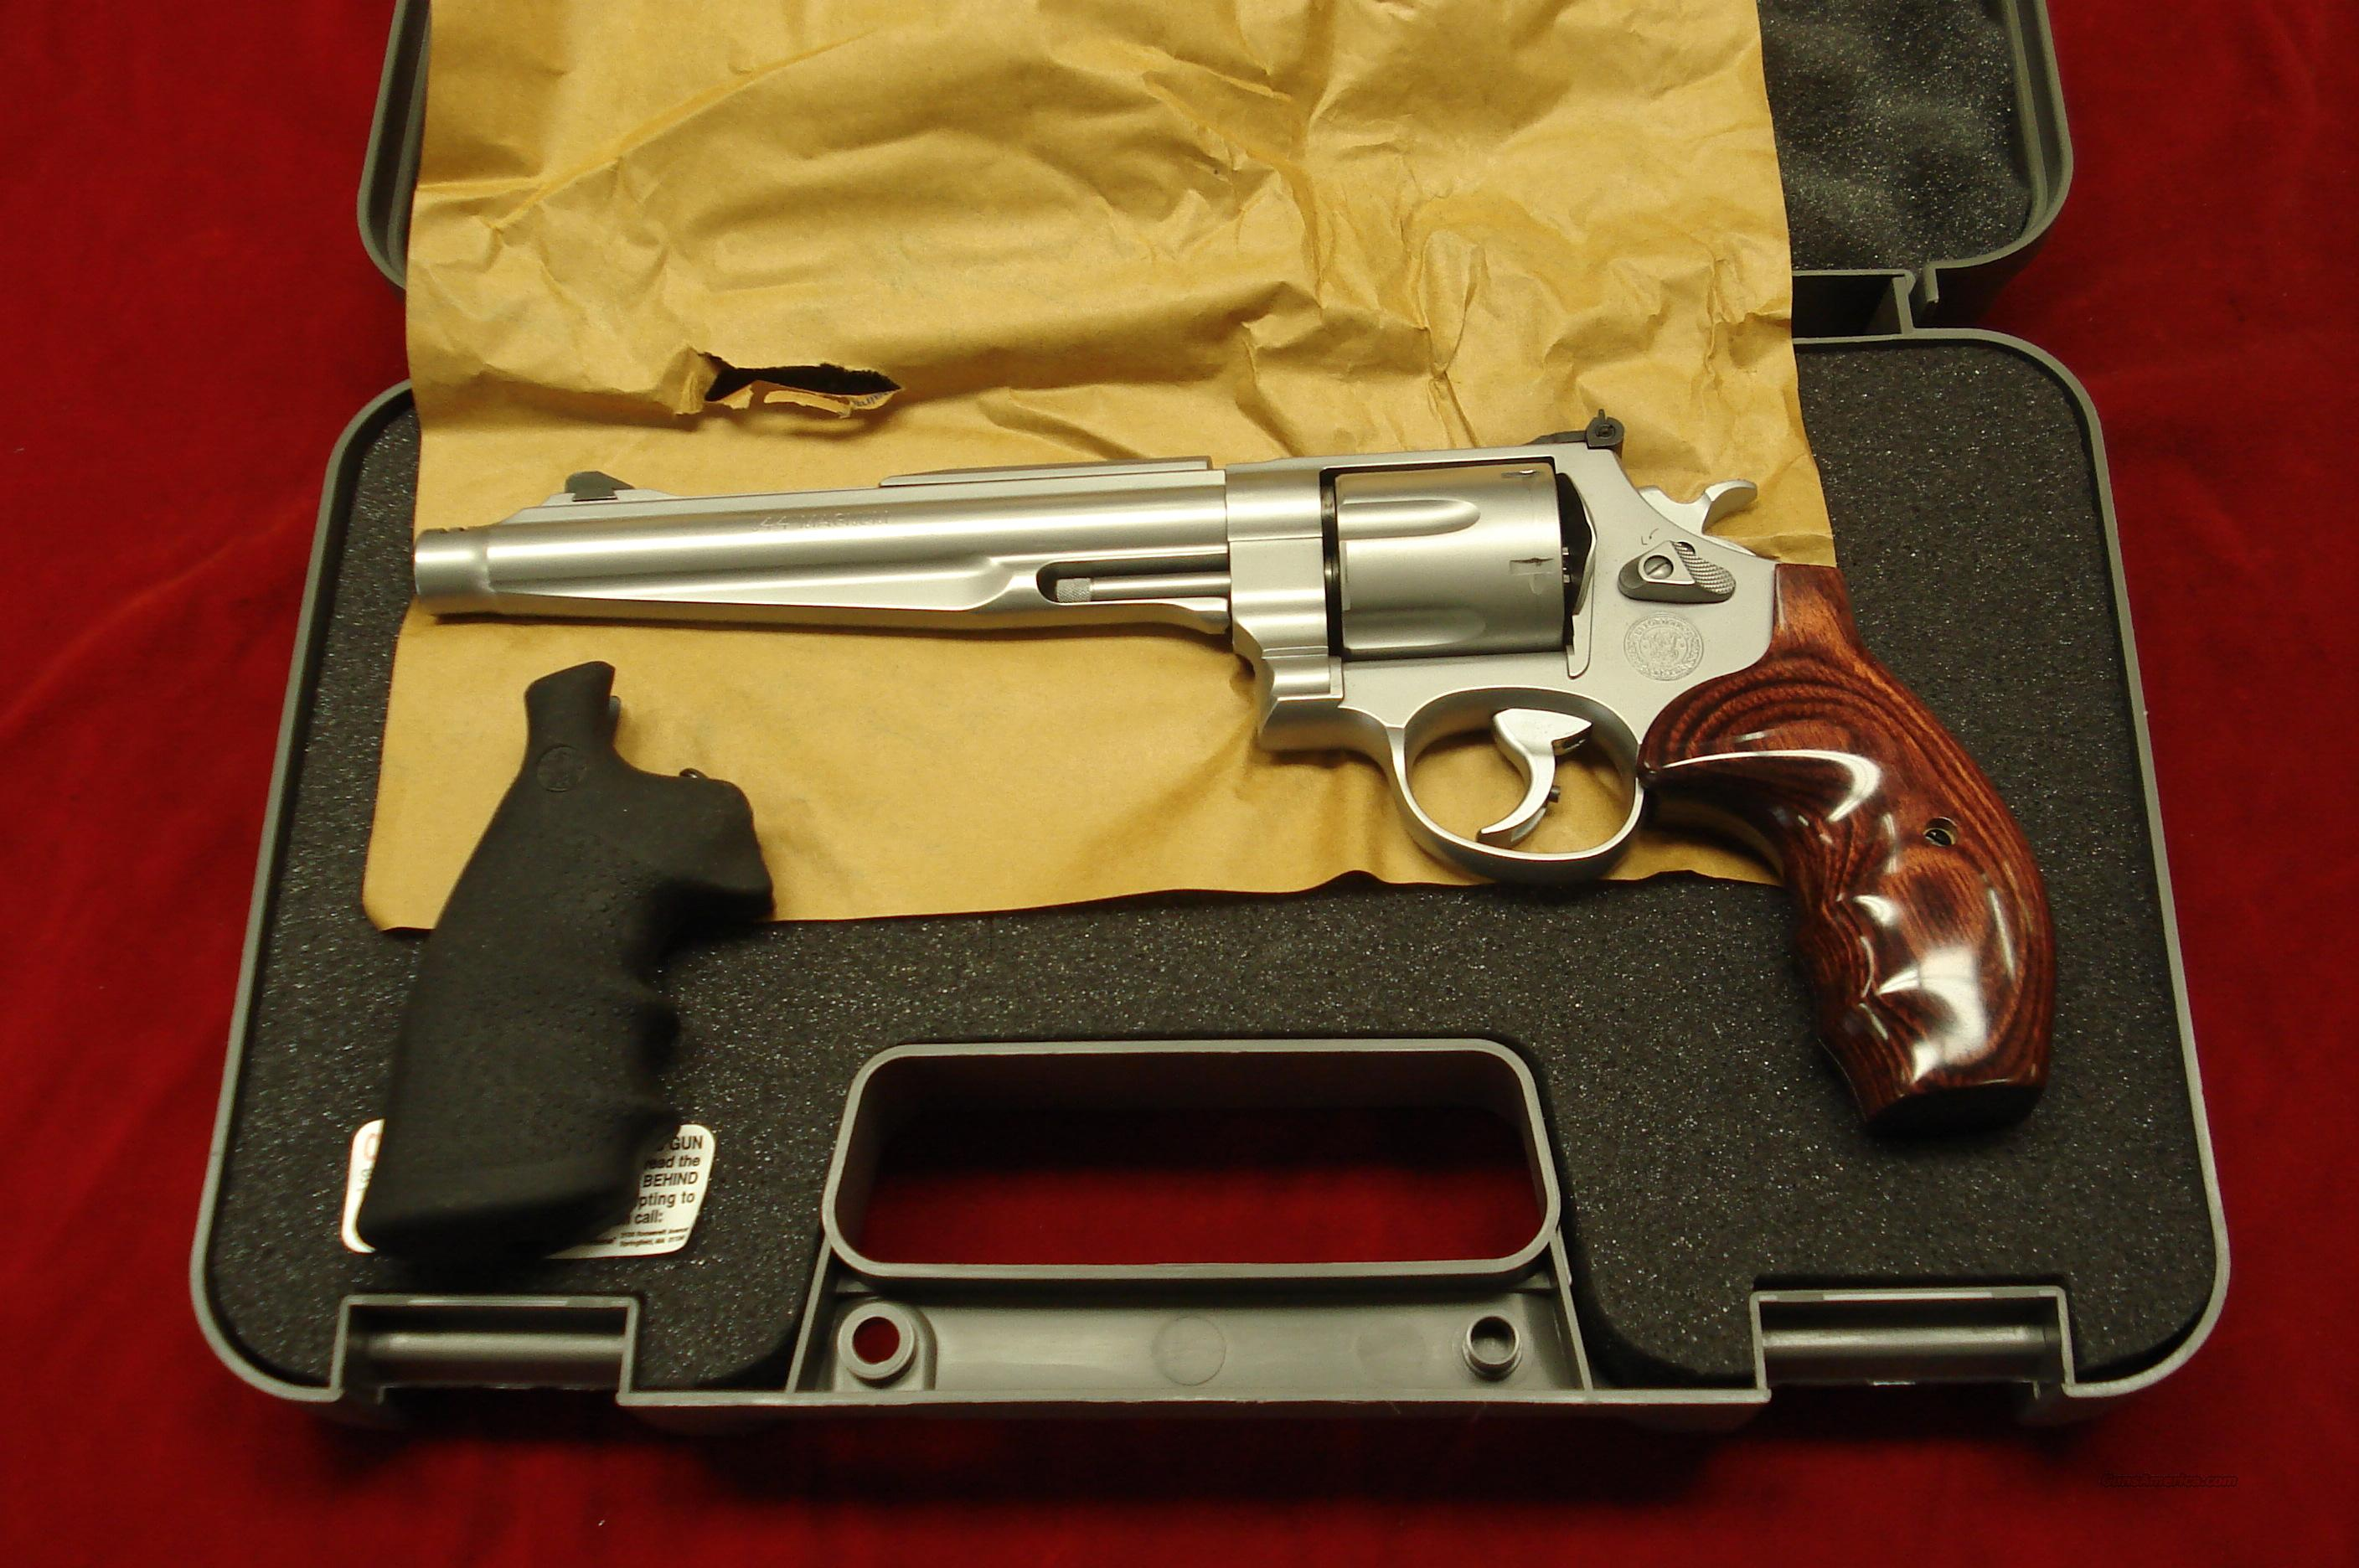 "SMITH & WESSON MODEL 629 PERFORMANCE CENTER .44 MAG 7.5"" COMPENSATED STAINLESS NEW   (170181)   Guns > Pistols > Smith & Wesson Revolvers > Performance Center"